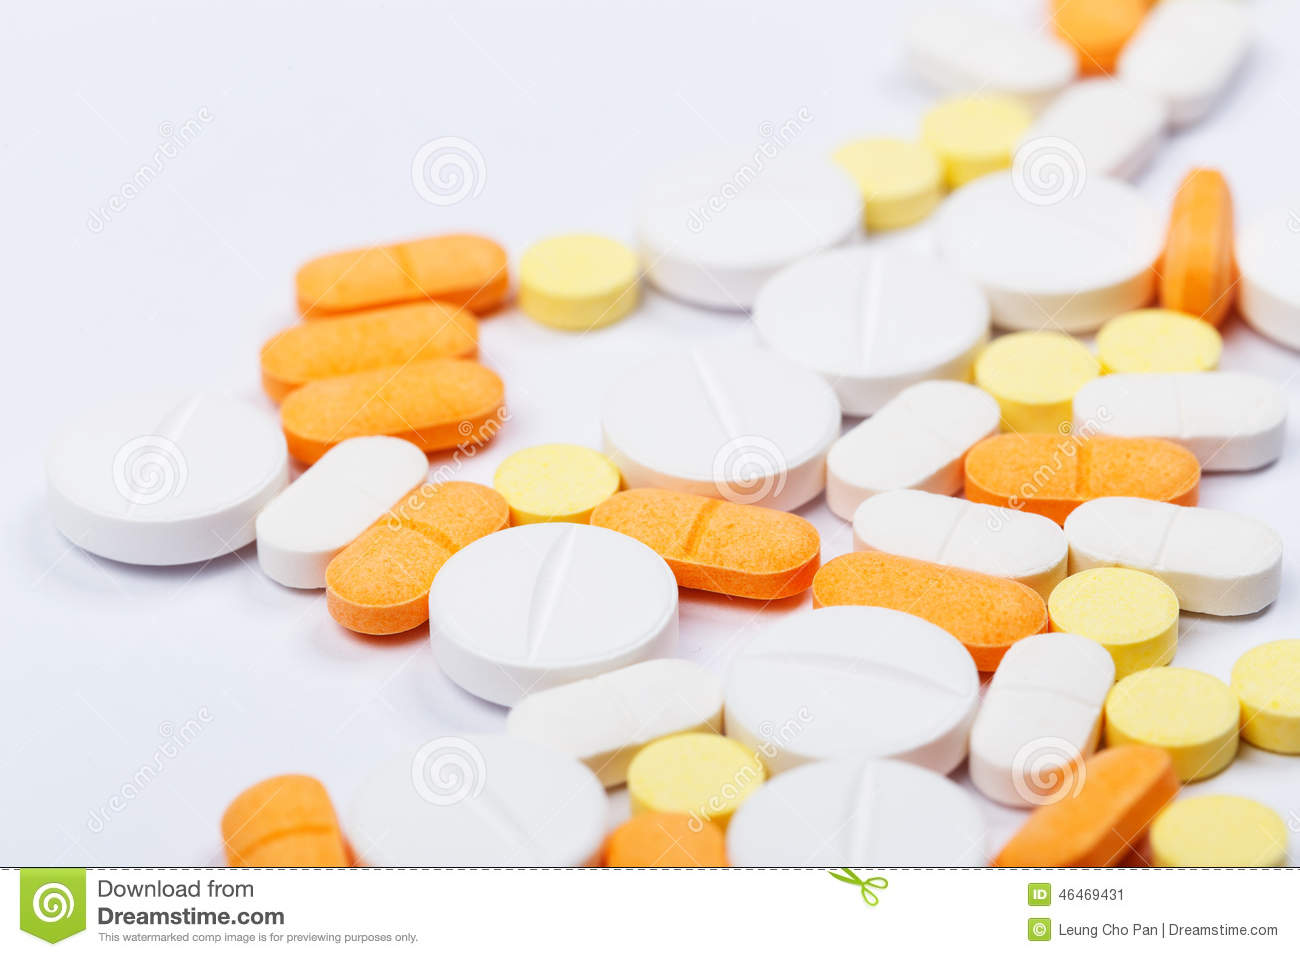 Orange viagra pill